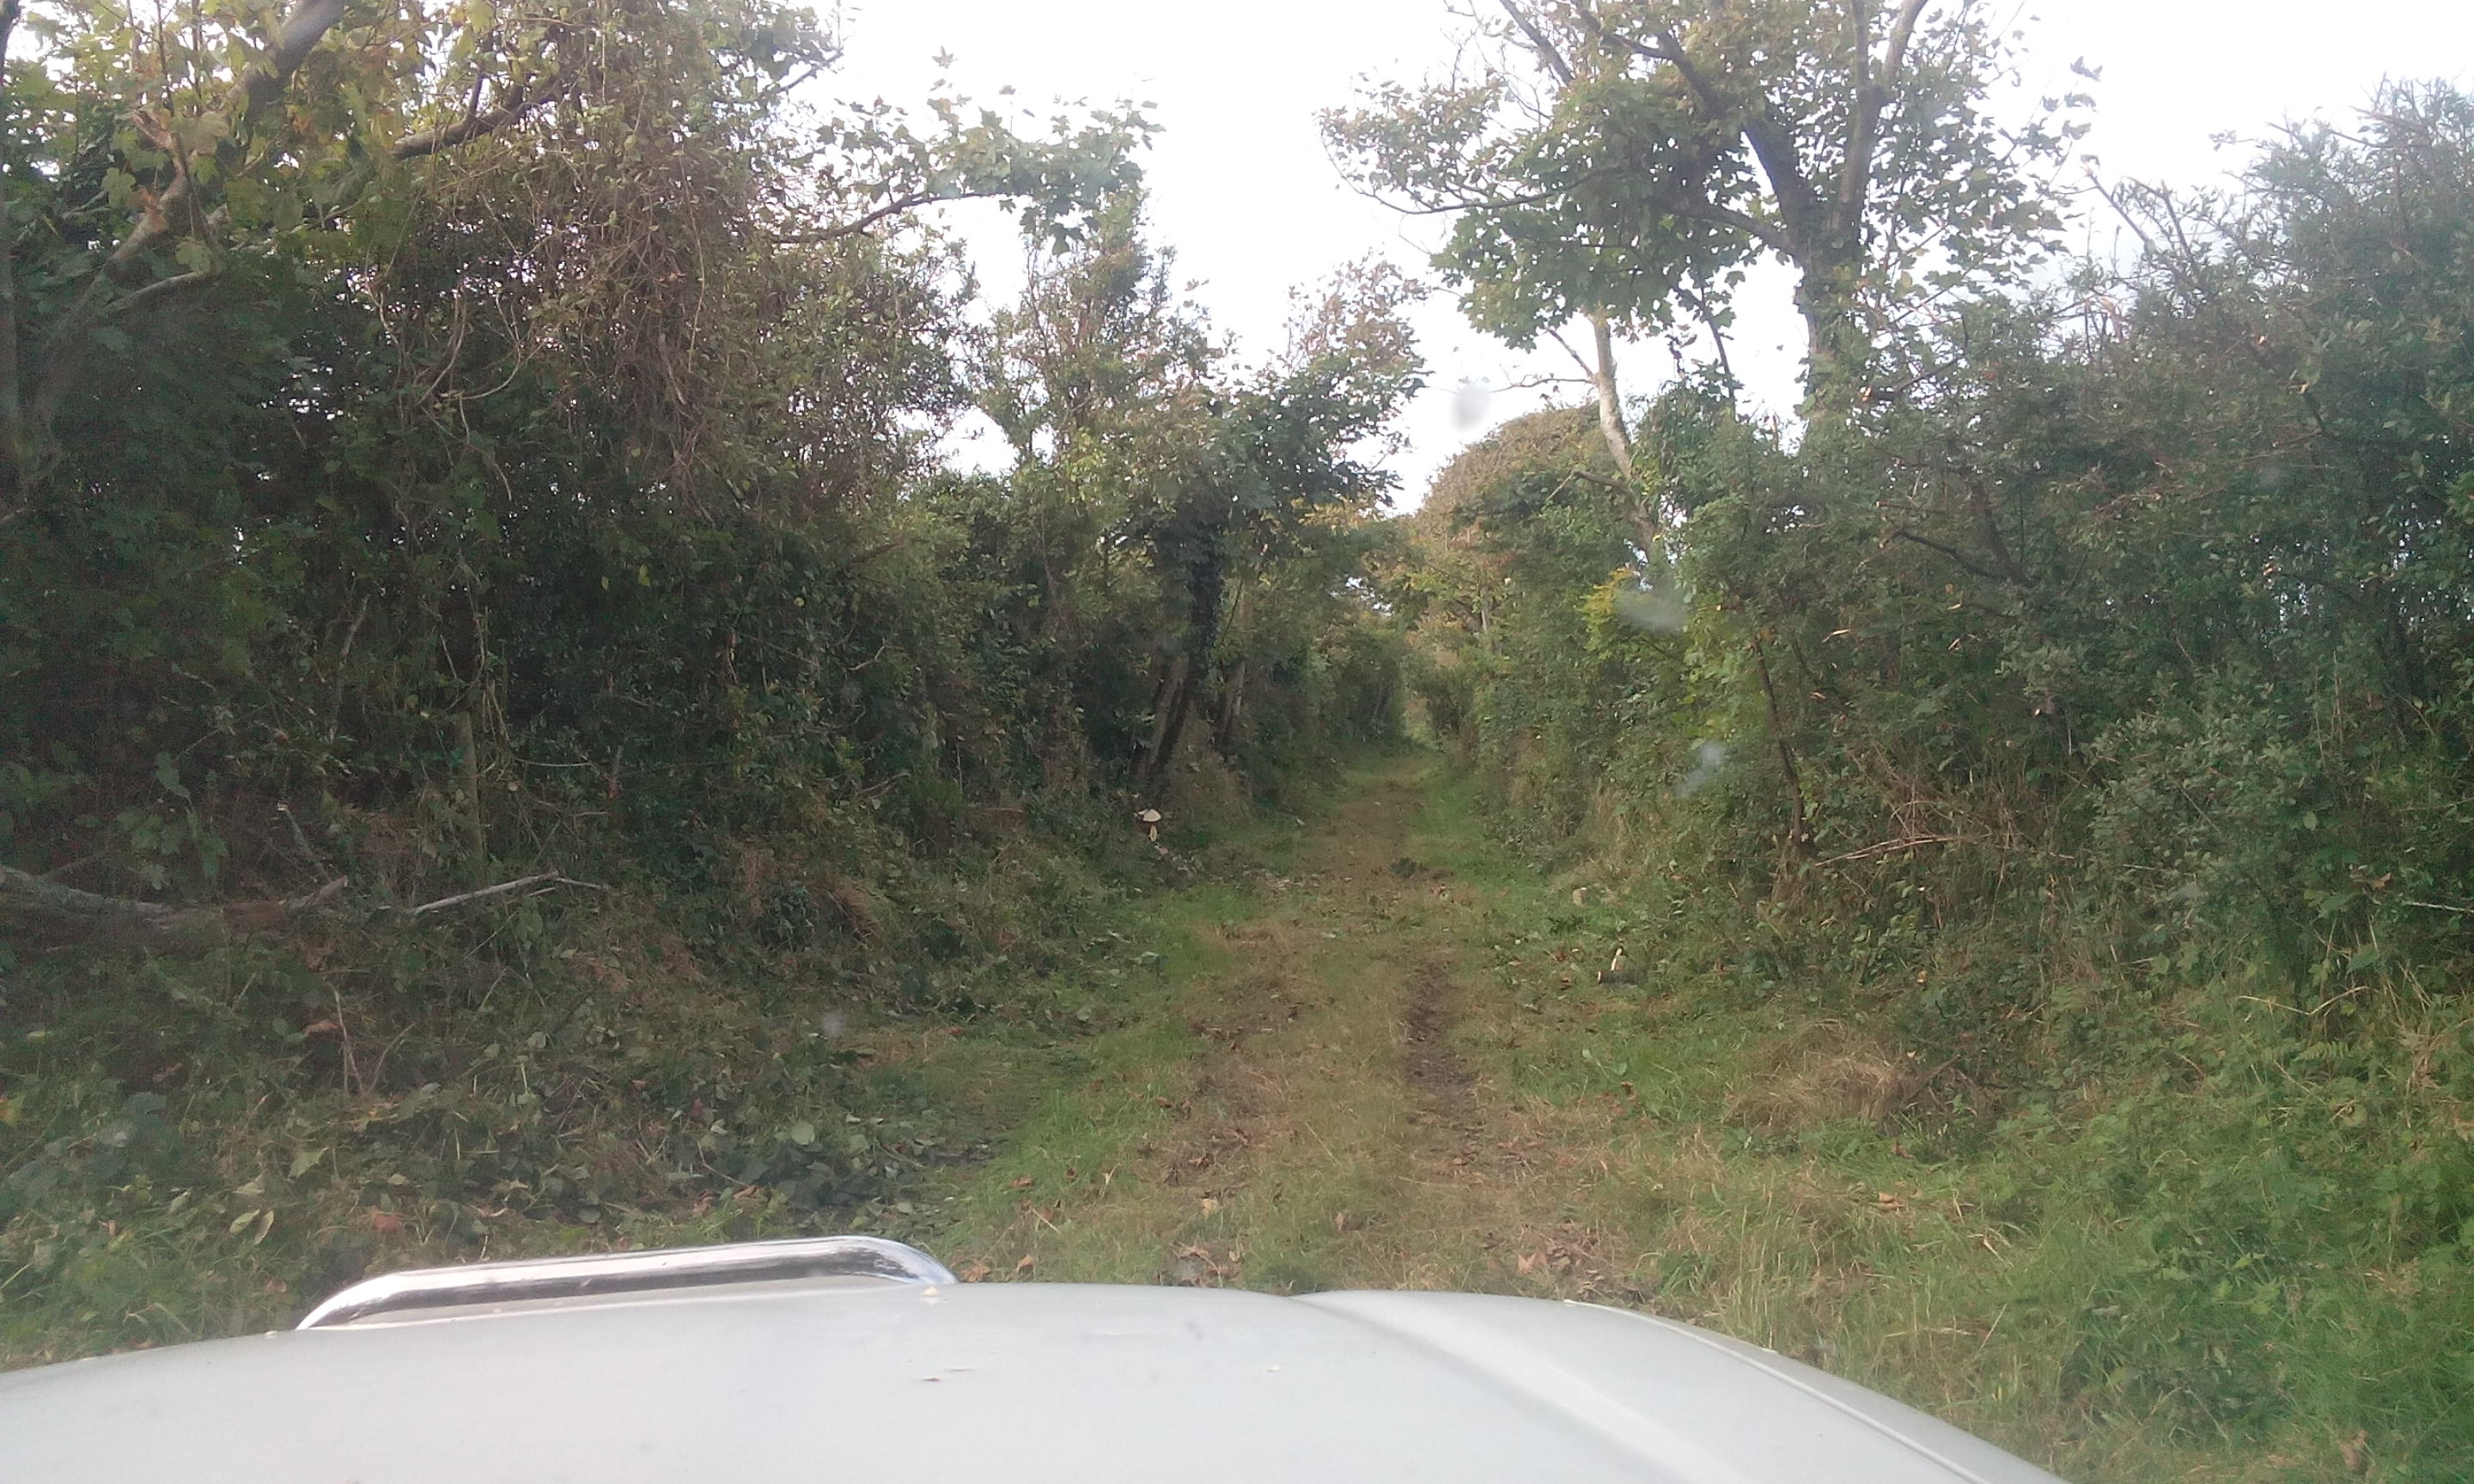 bridleway near mathry cleared for vehicle access